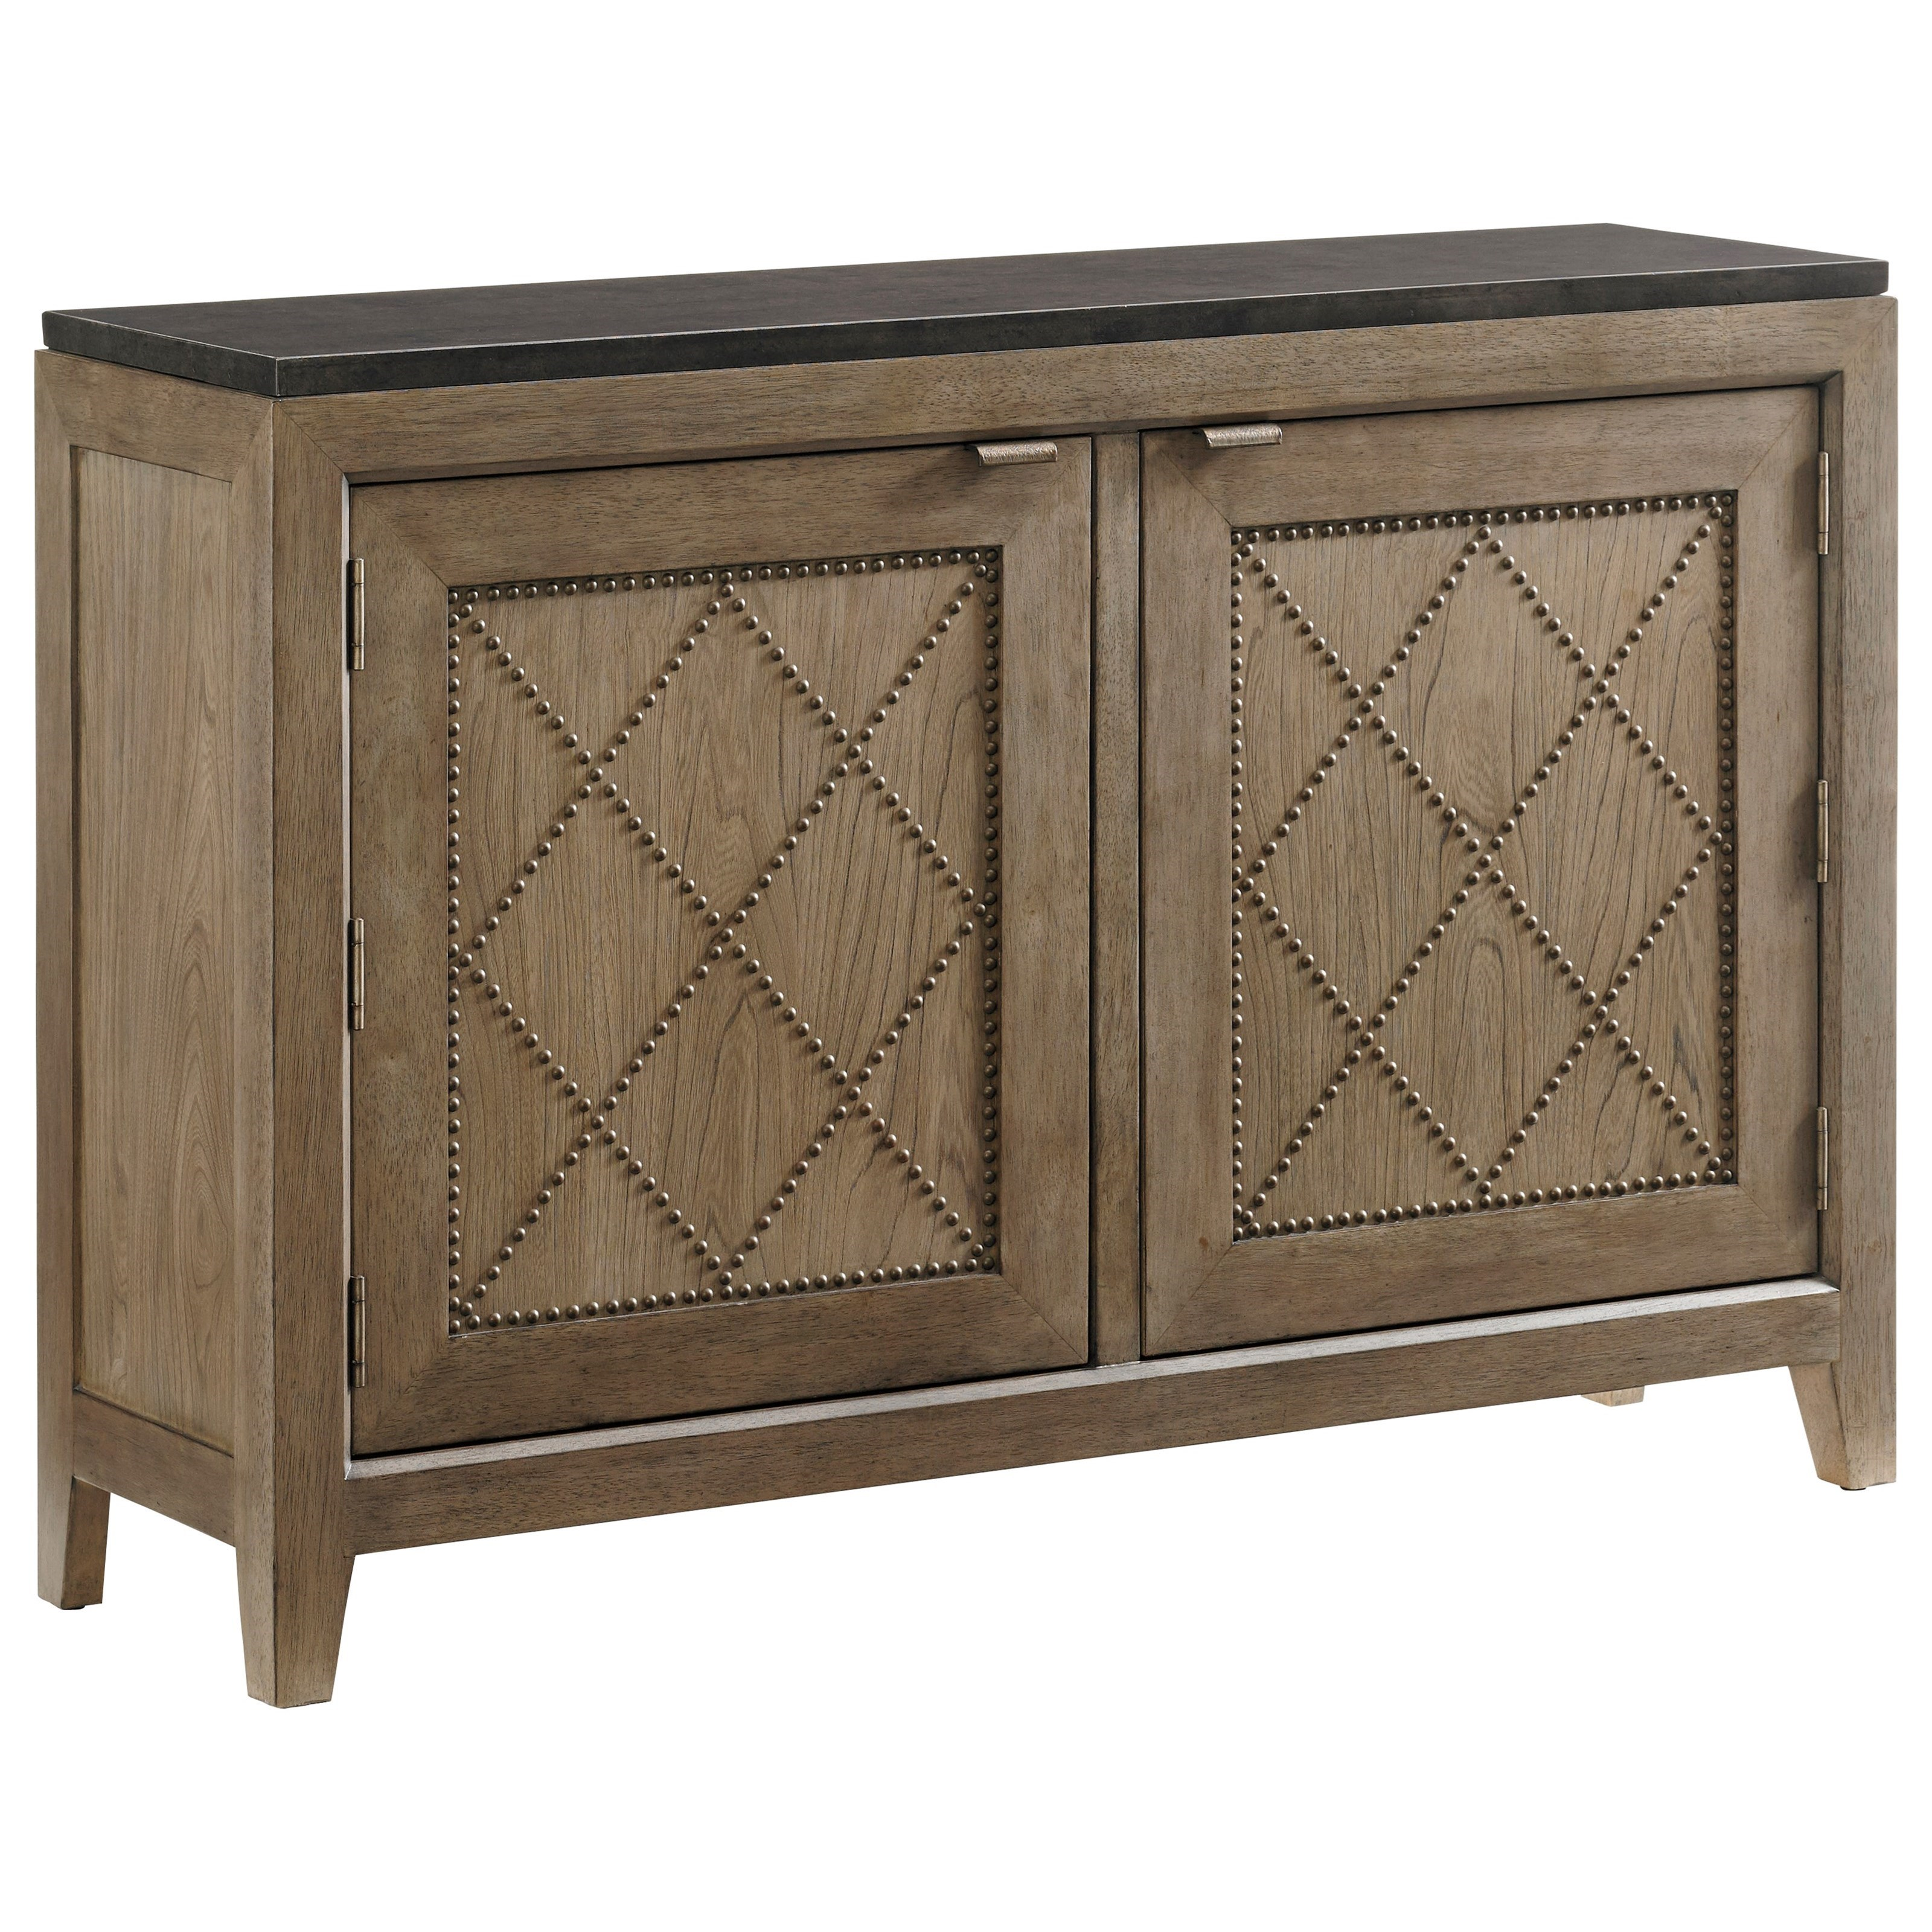 Cypress Point Emerson Hall Chest by Tommy Bahama Home at Baer's Furniture